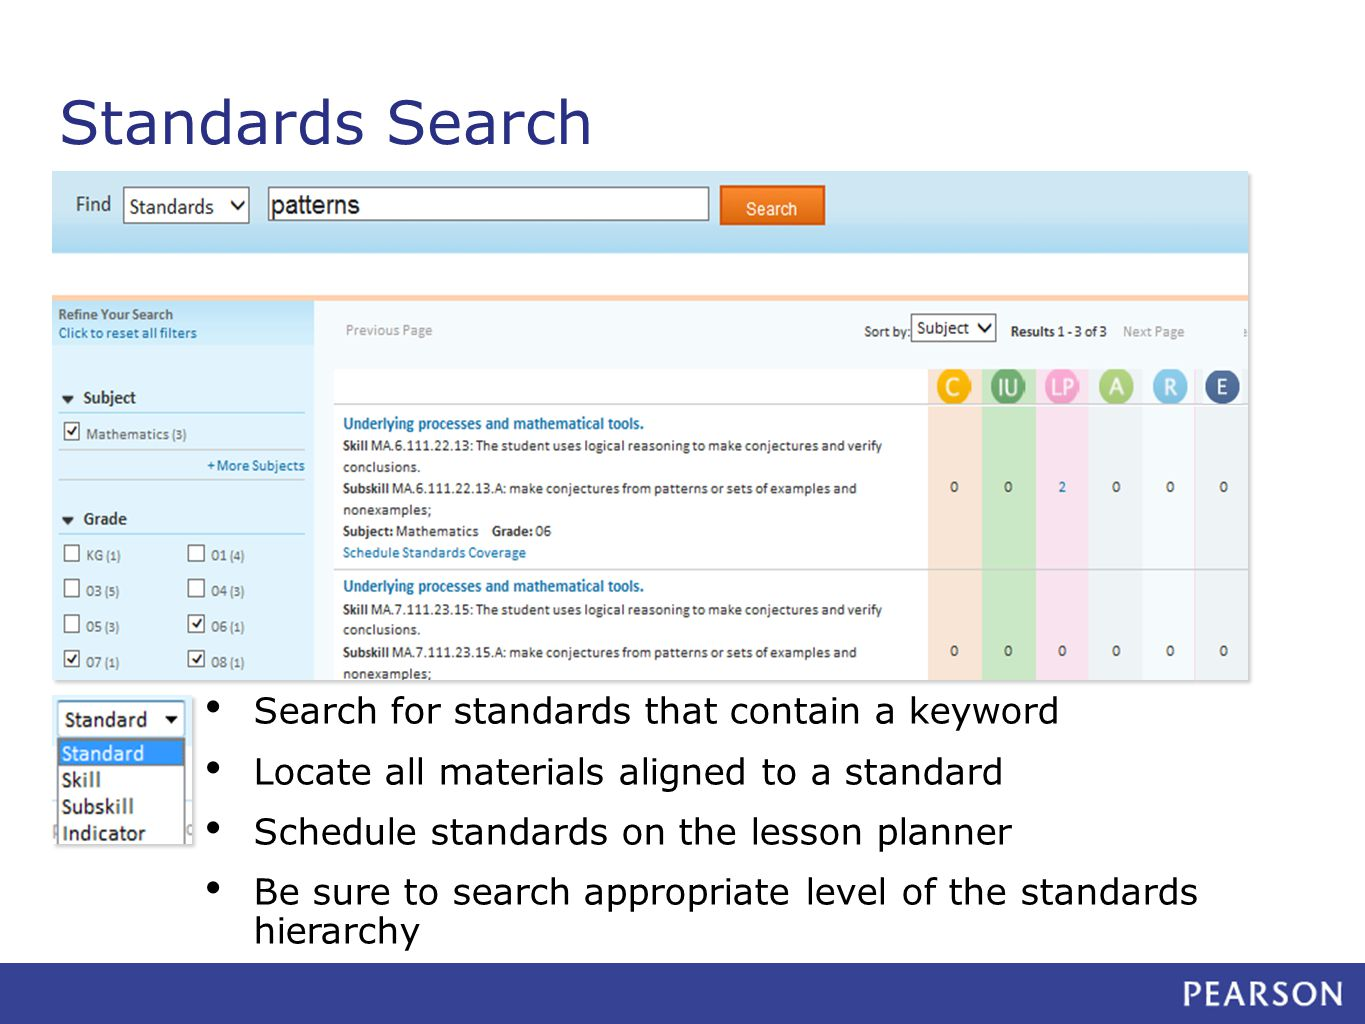 Standards Search Search for standards that contain a keyword Locate all materials aligned to a standard Schedule standards on the lesson planner Be sure to search appropriate level of the standards hierarchy